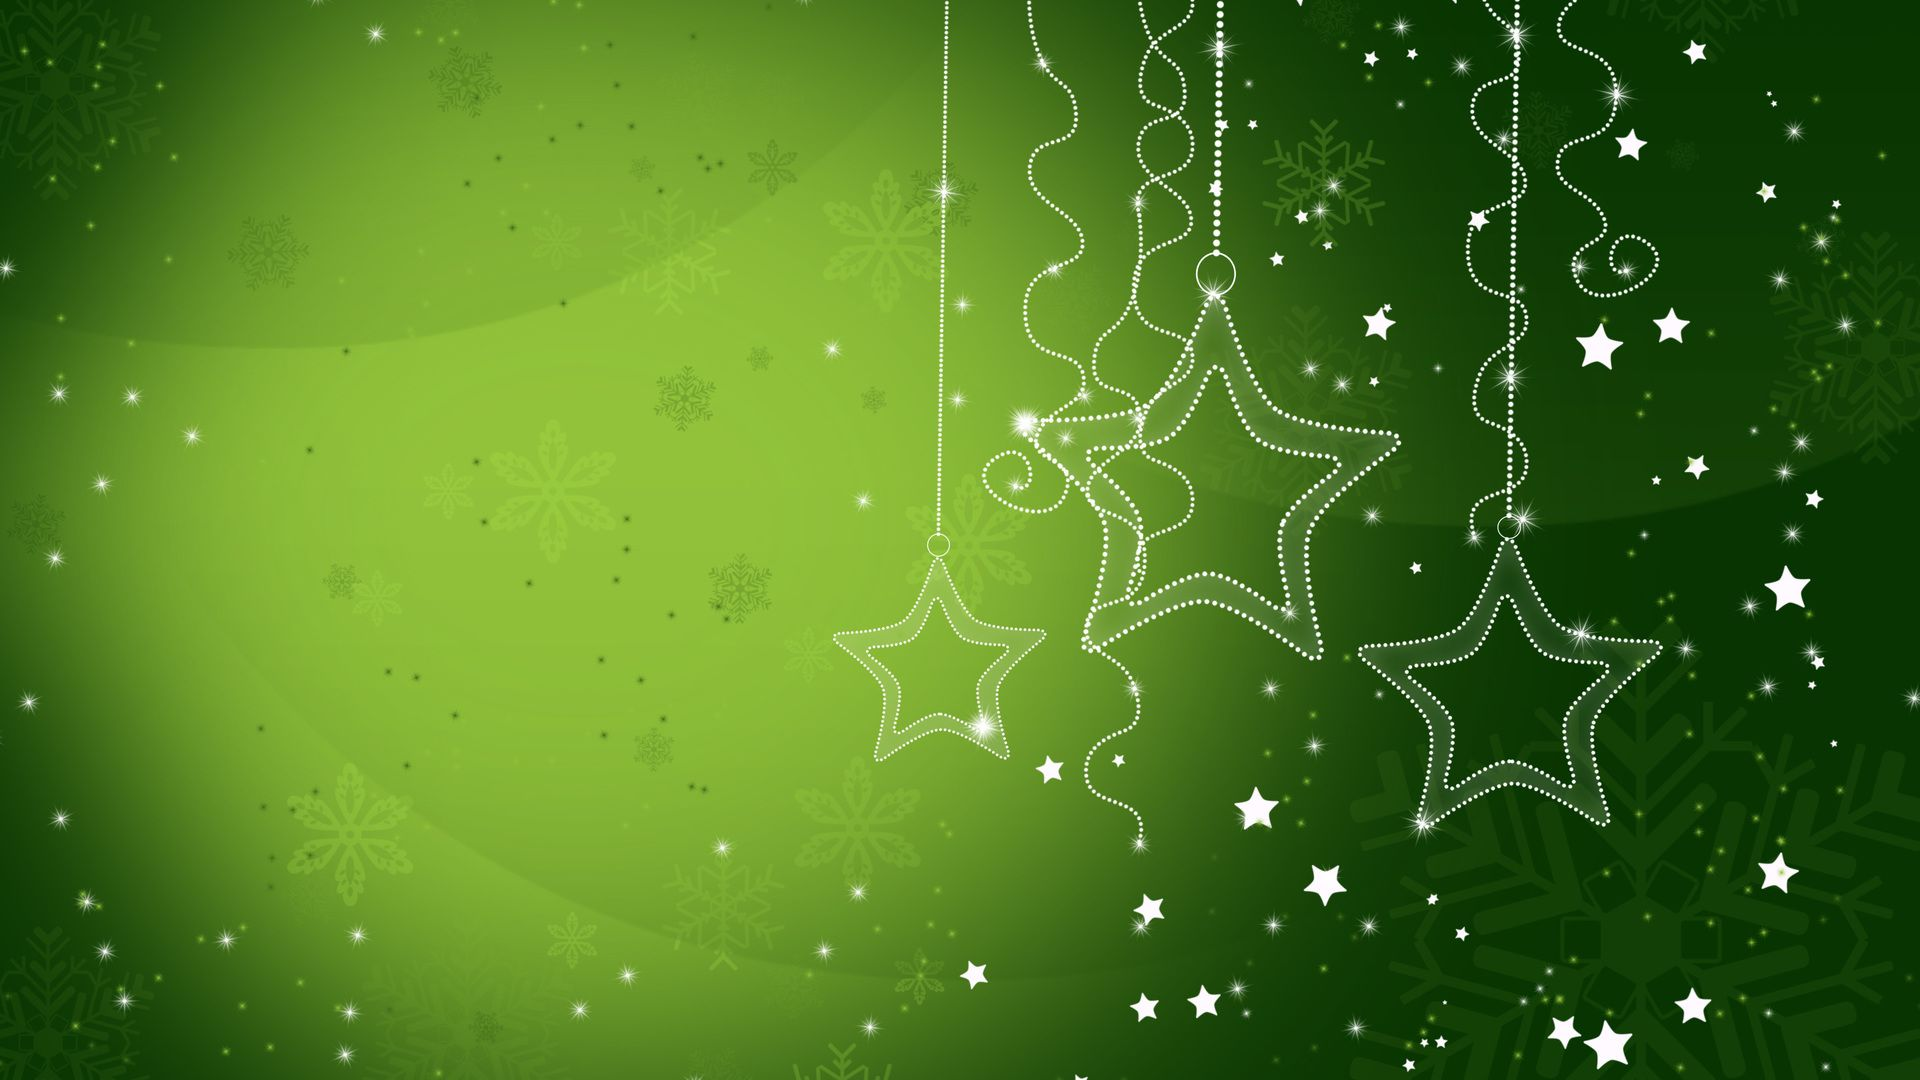 Christmas For Website wallpaper download